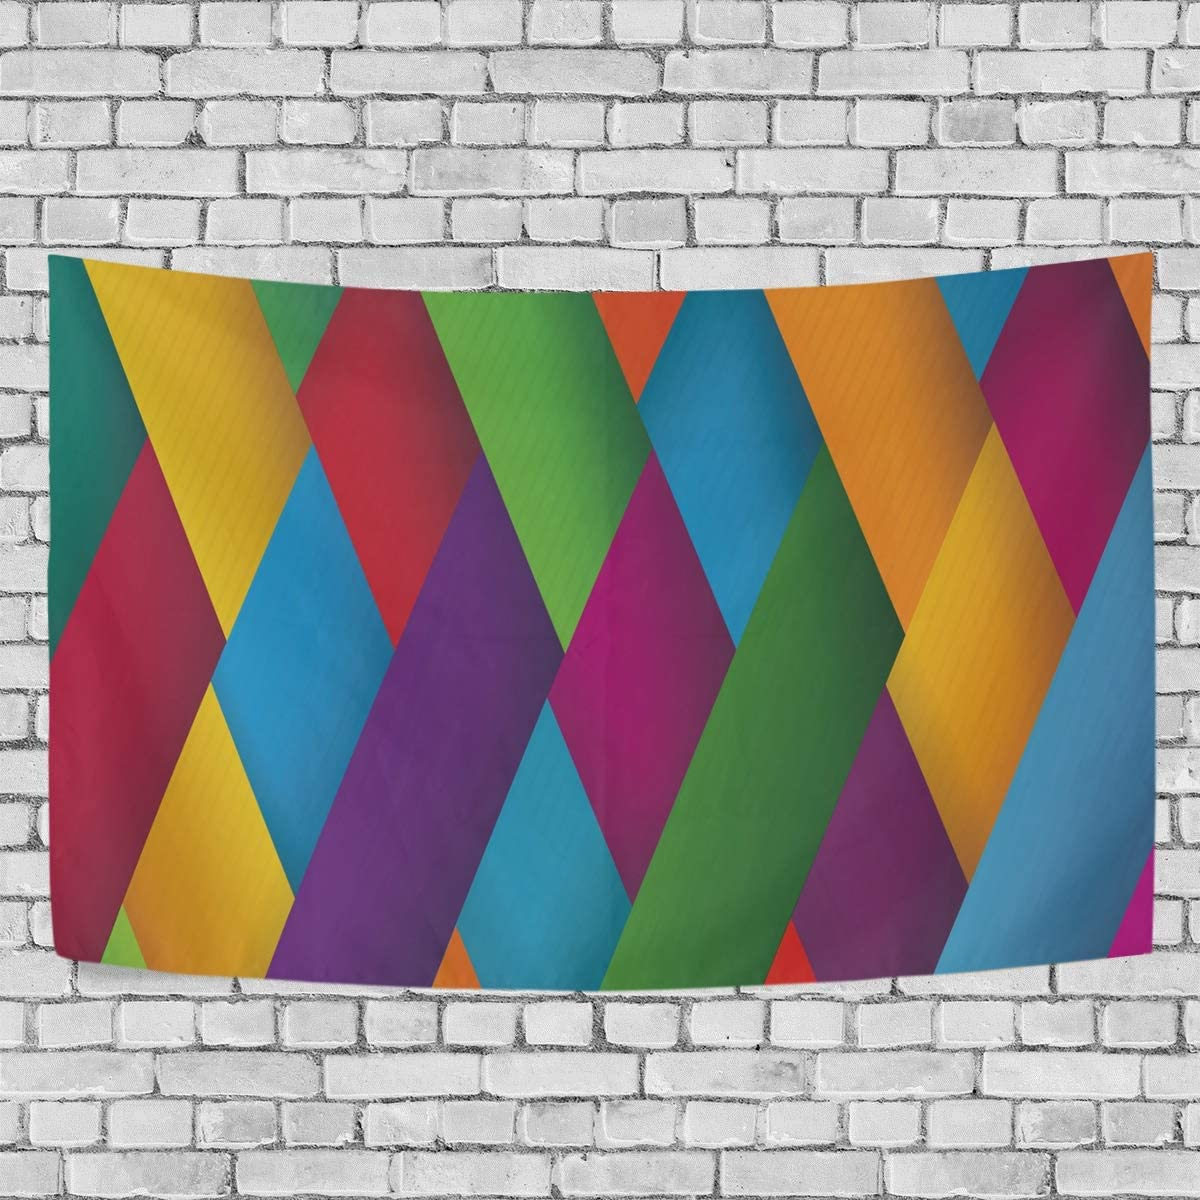 Wall Tapestry Decor Cross Striped Pattern Green Yellow Purple Red Blue Modern Wall Hanging Artwork Polyester Fabric Cottage Dorm Bedroom Living Room Wall Art Wall Blanket Home Decoration 90